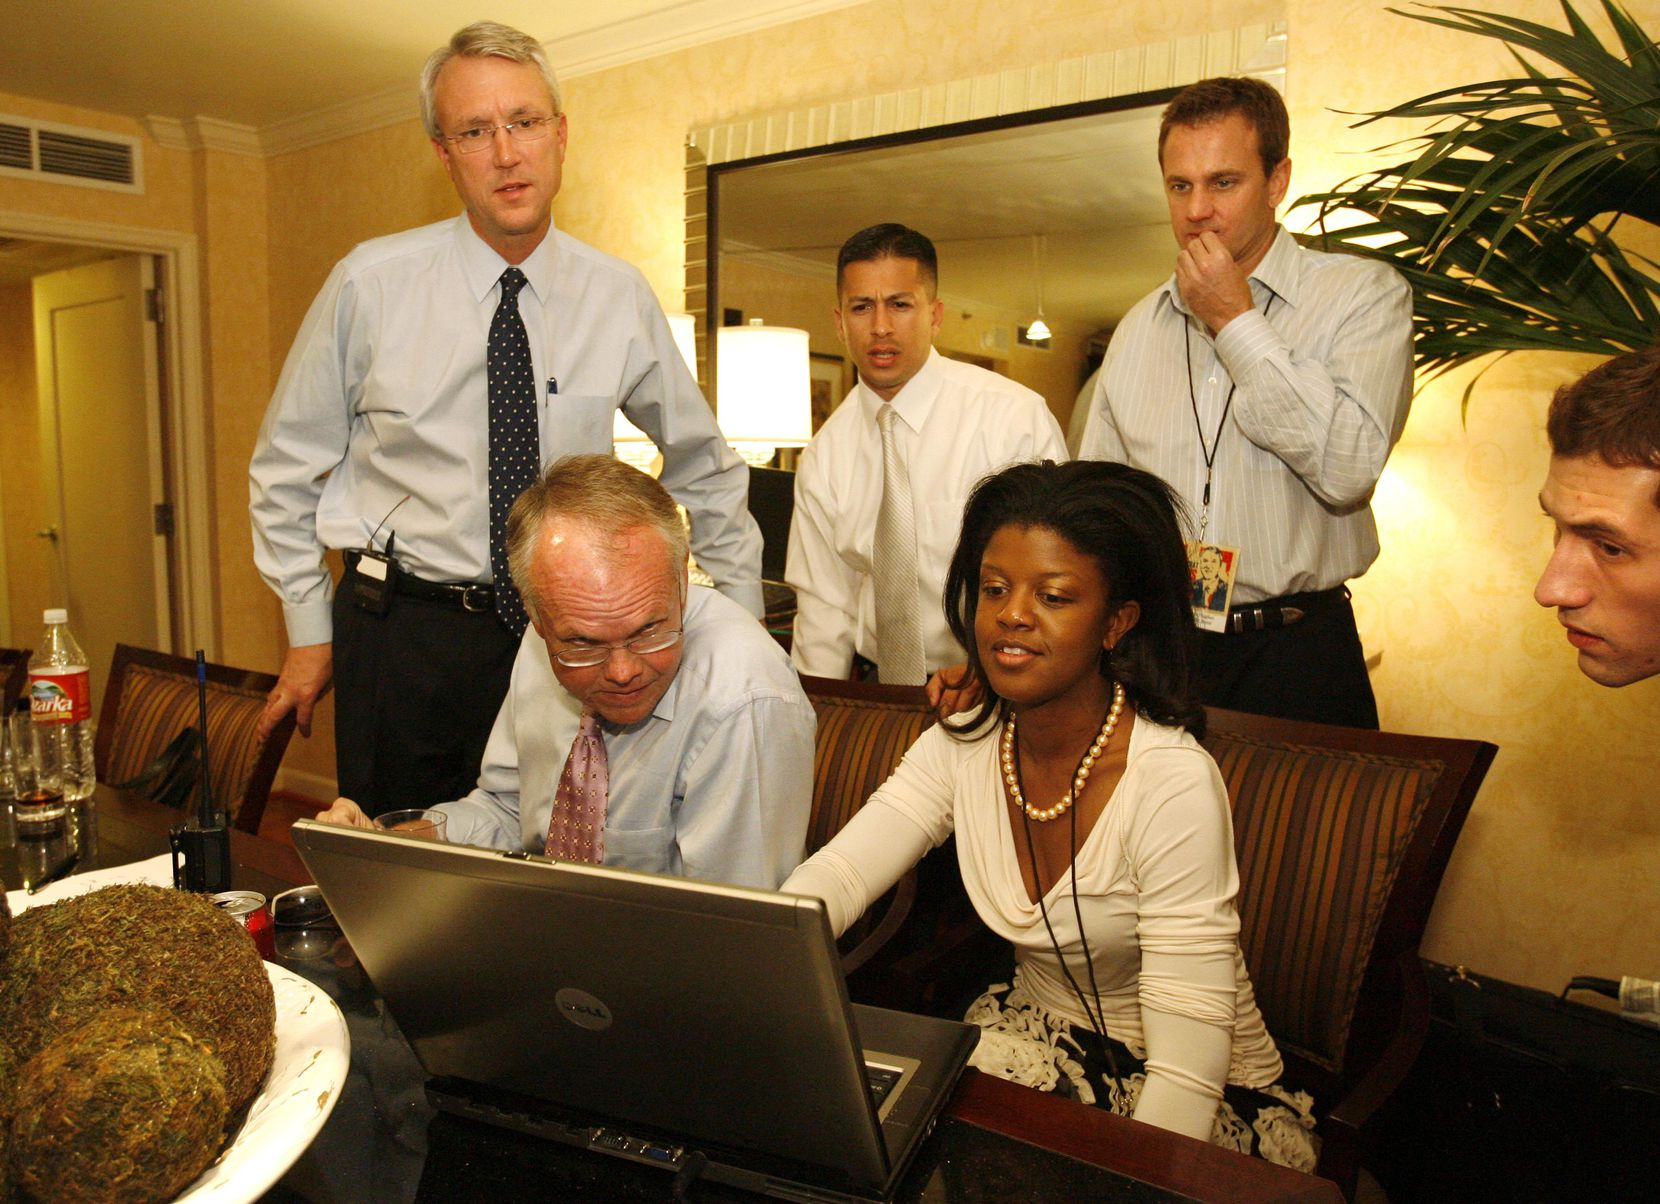 Democratic gubernatorial candidate Chris Bell (left), Fred Ellis (sitting left), finance director, Rowland Garza (standing center with tie) travel aide, Chris Hughes (standing center right) campaign chairman, Trista Allen (sitting center) political director, and Adam Briscoe (far right) travel aide look over the results at the Intercontinental Hotel in Houston on Tuesday, November 7, 2006.